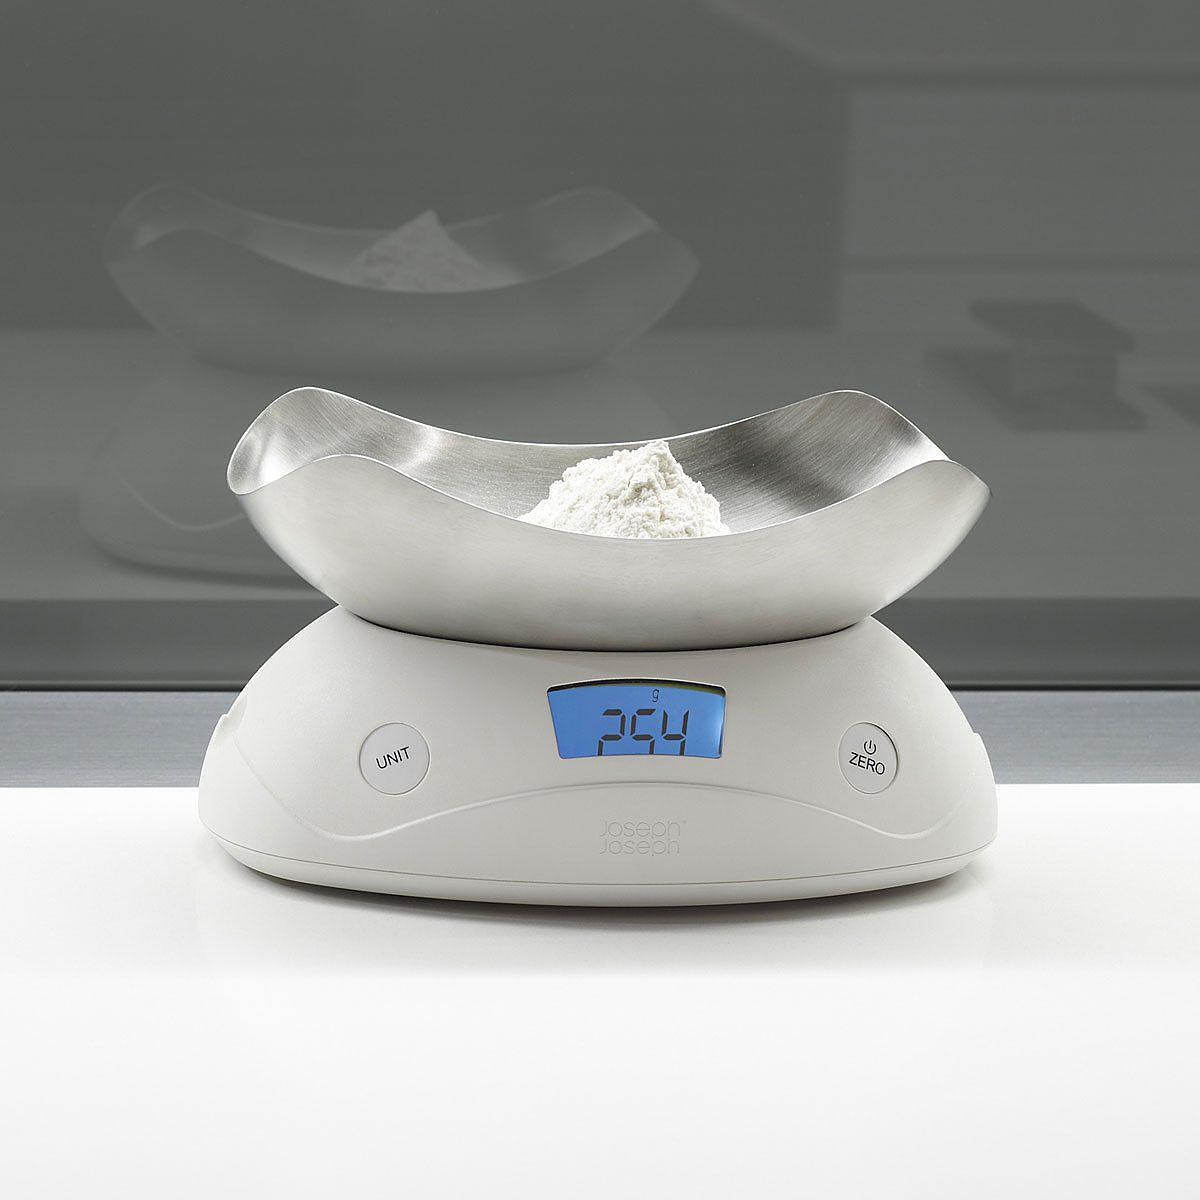 Shell digital kitchen scale by Joseph Joseph.